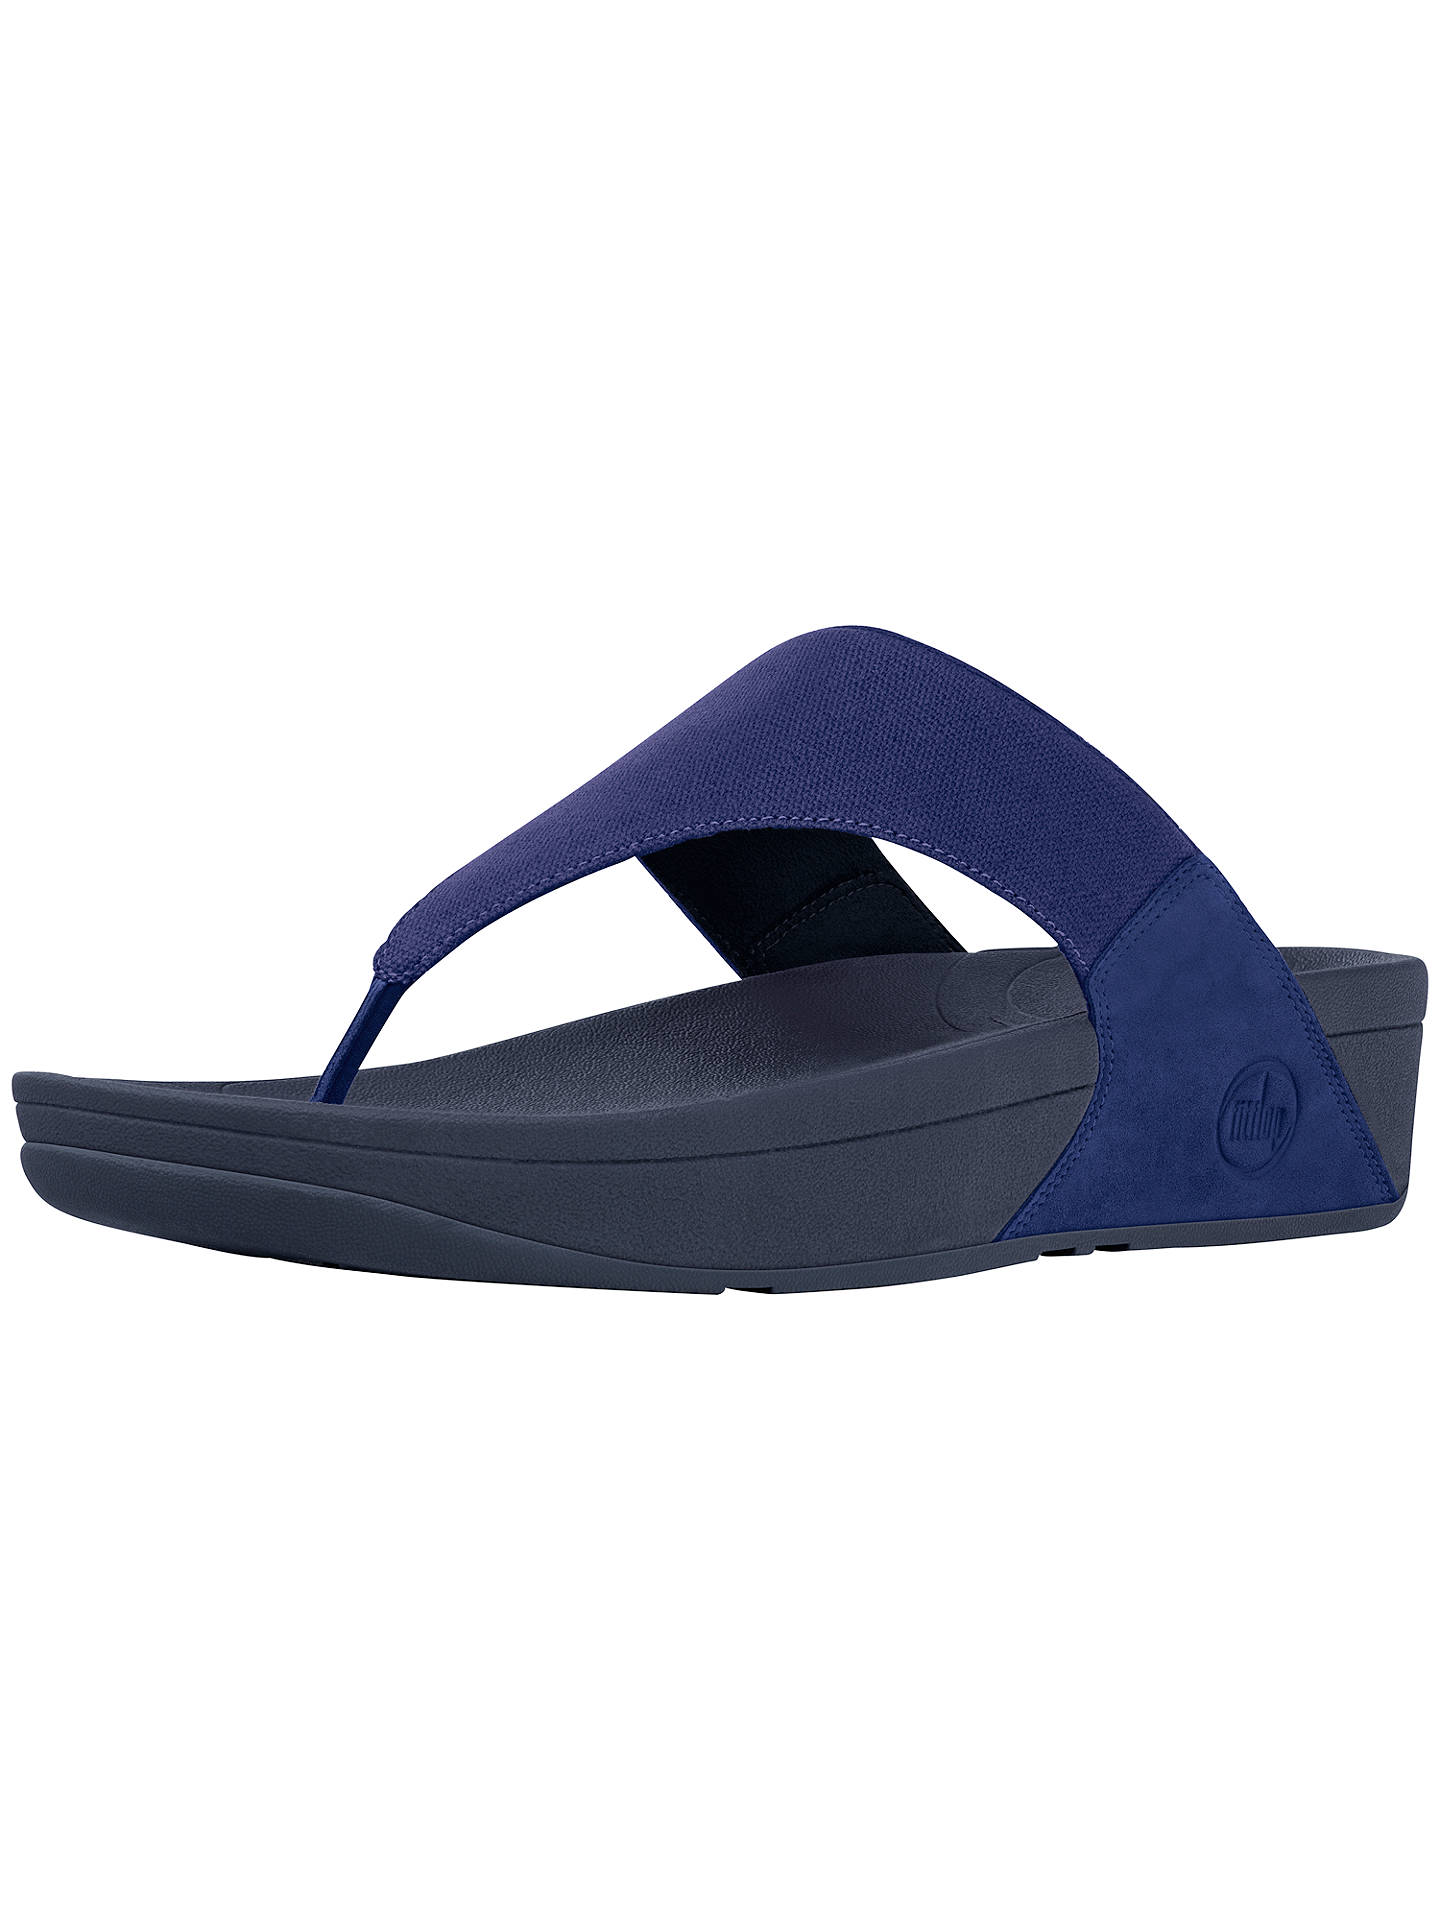 59395a0fcb9 FitFlop Lulu Canvas Sandals at John Lewis   Partners